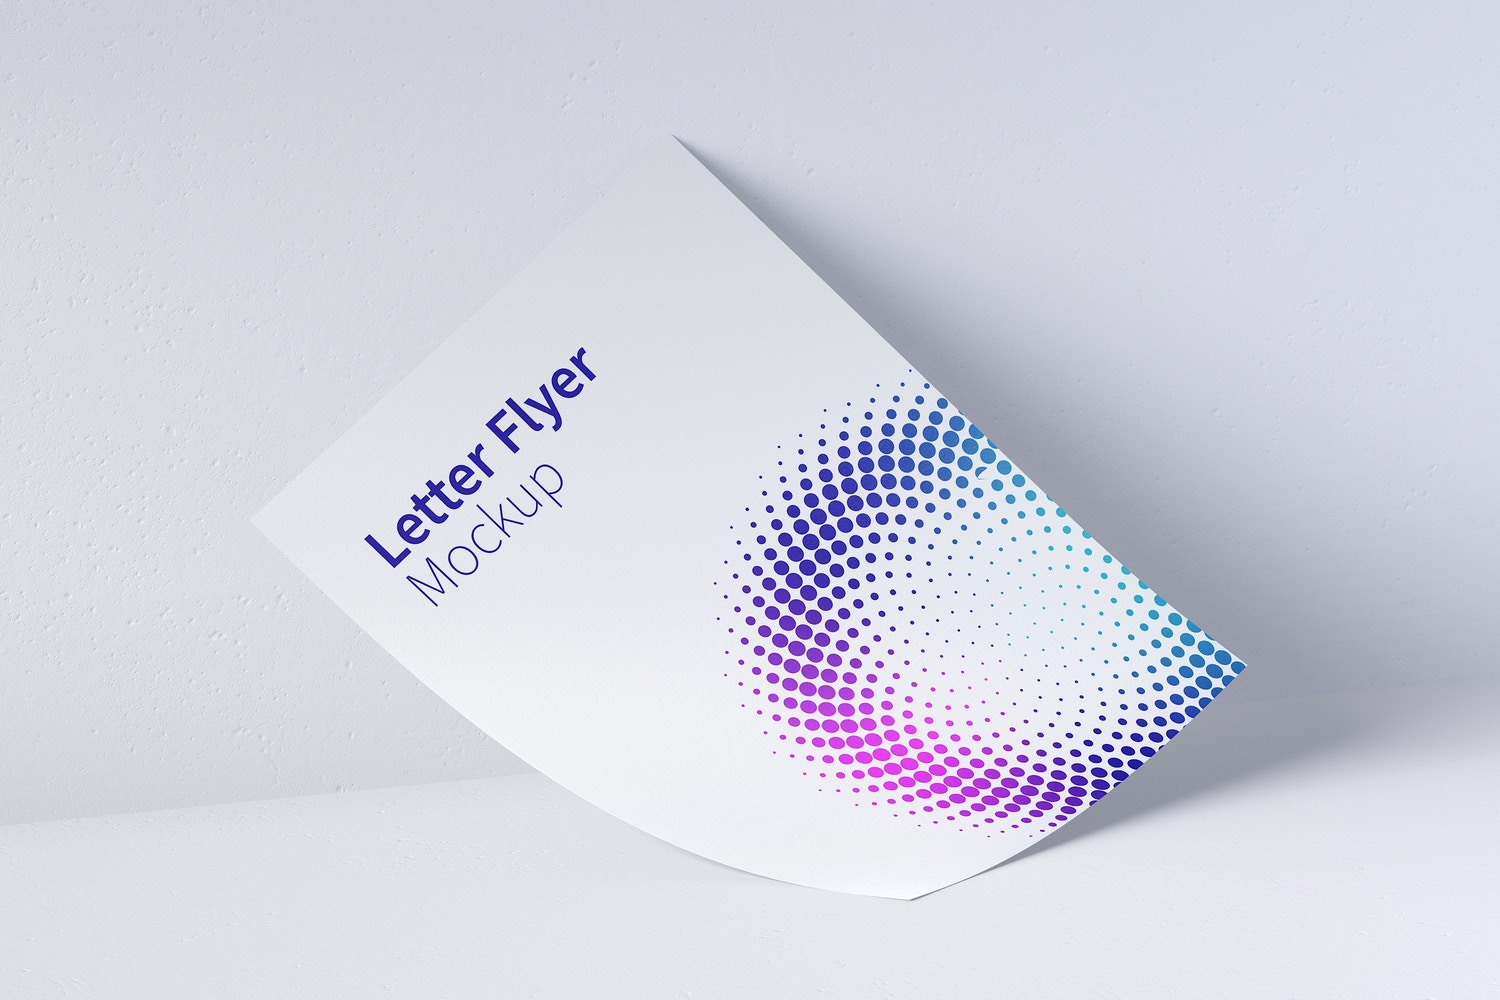 Letter Flyer Mockup 03 by Original Mockups on Original Mockups